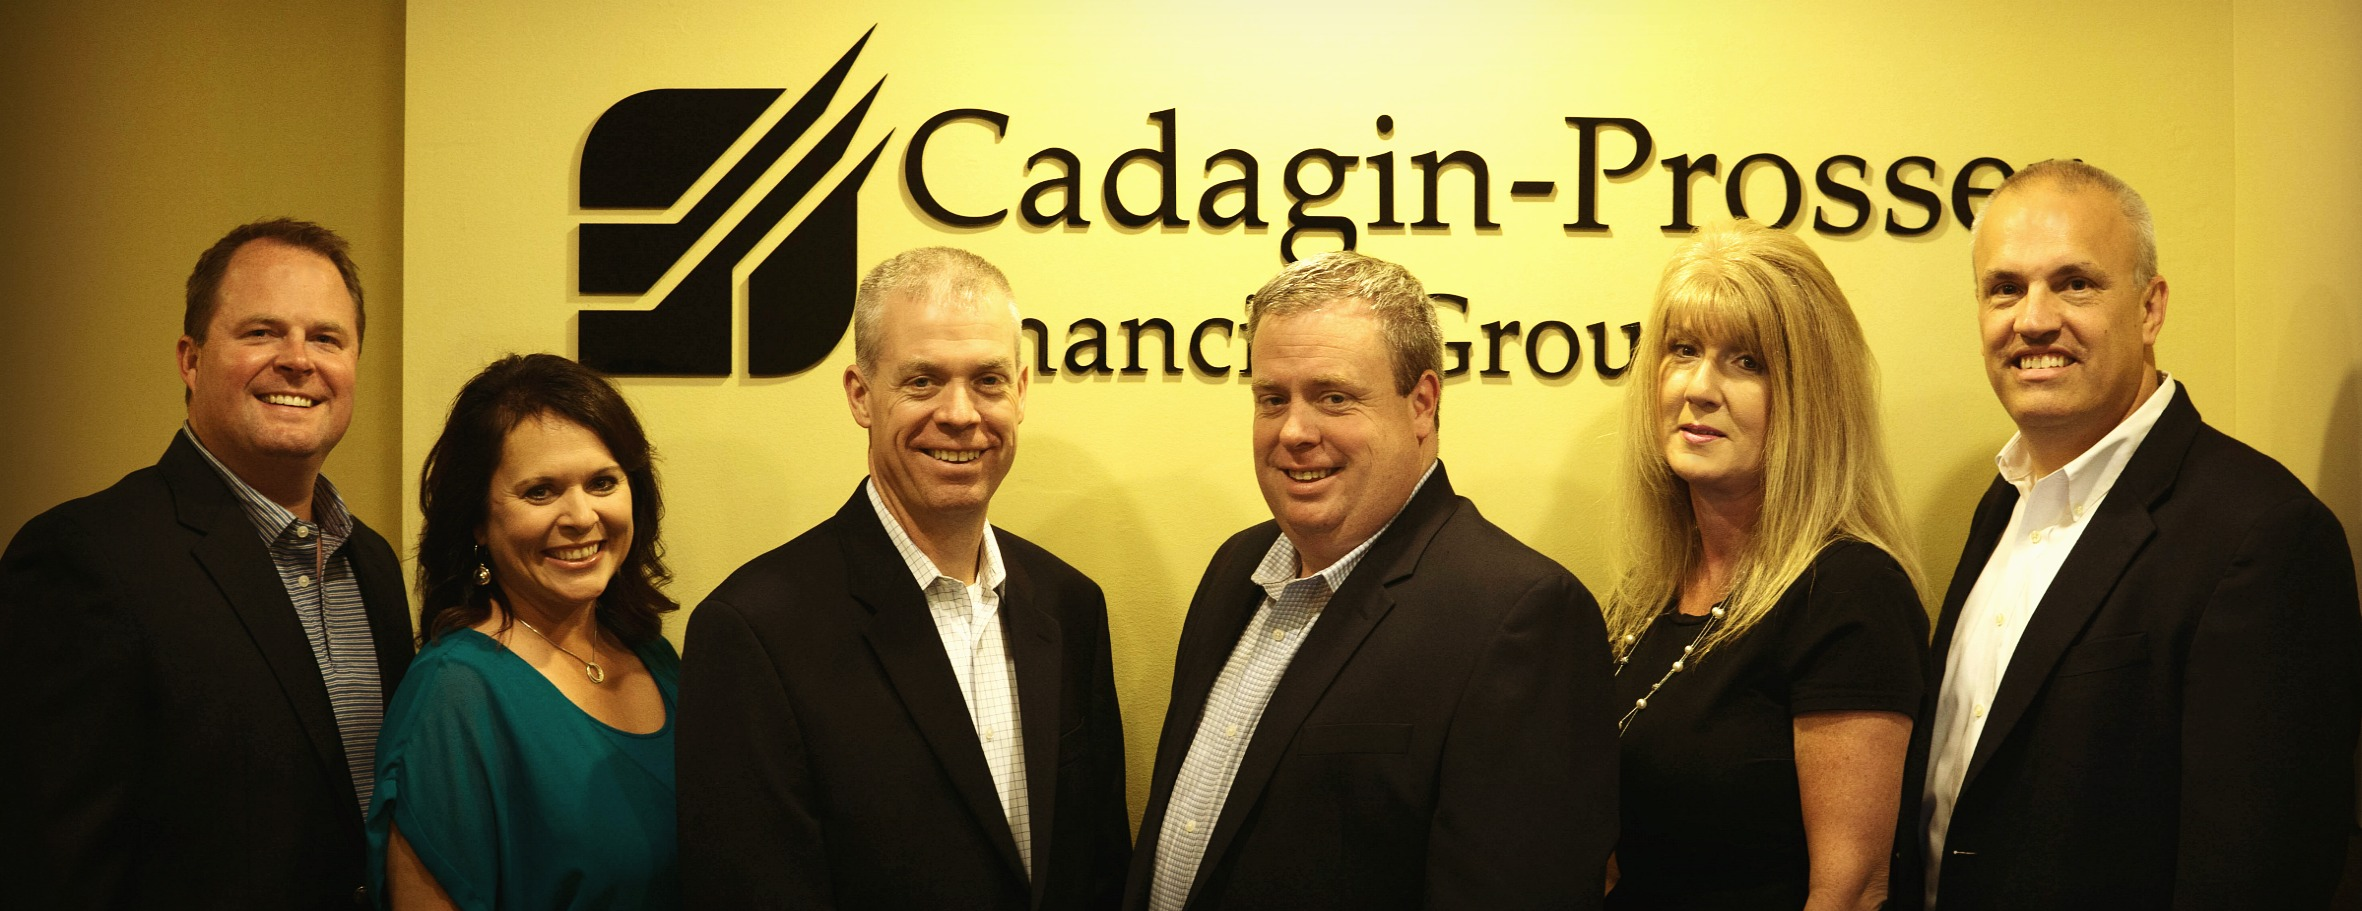 Cadagin - Prosser Financial Group